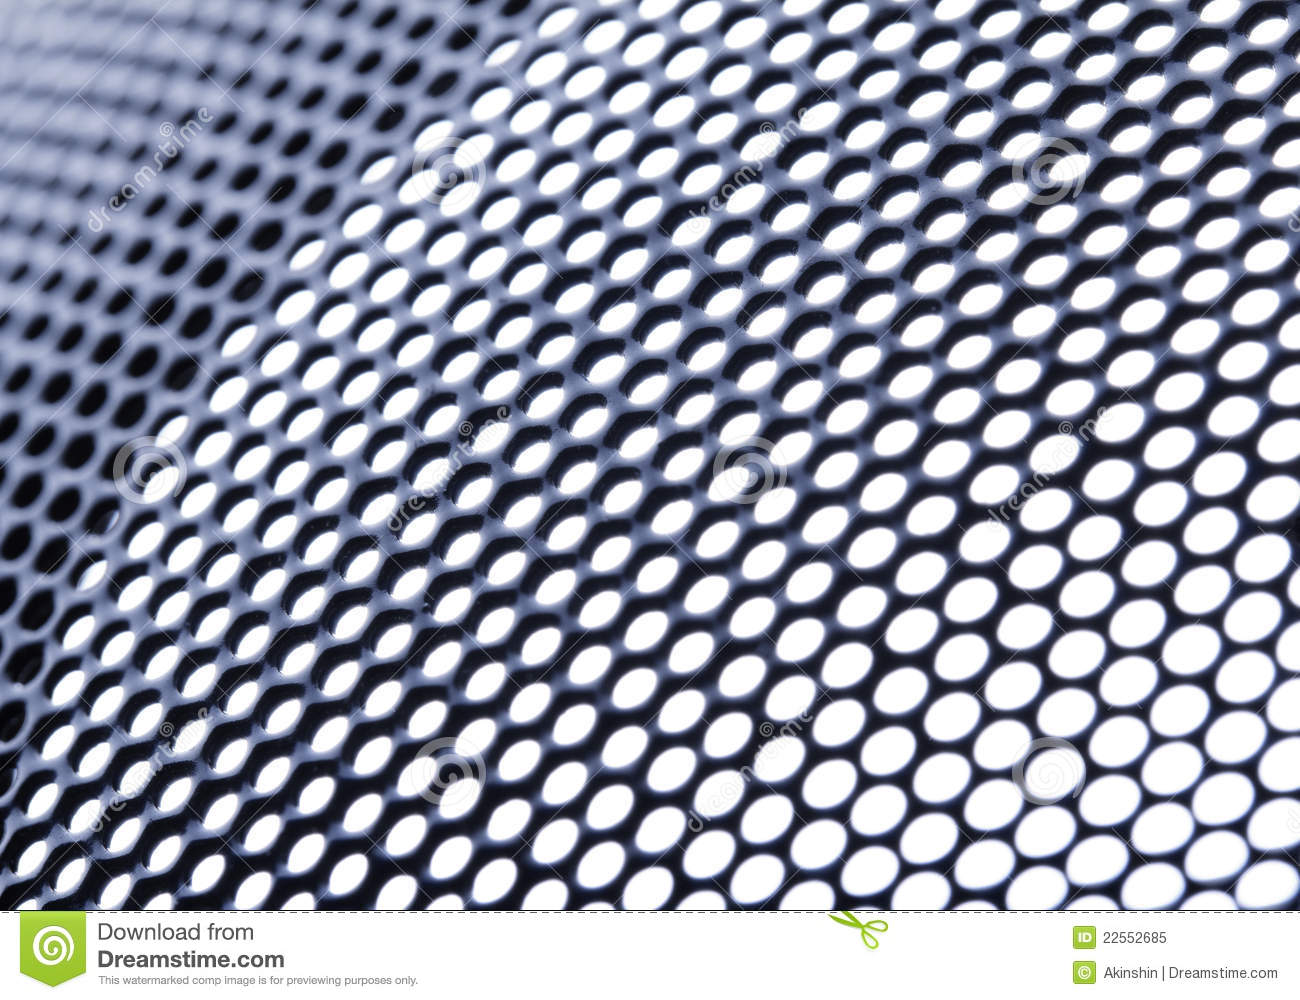 Technology Background With Circular Mesh: Mesh Background Stock Image. Image Of Macro, Circular